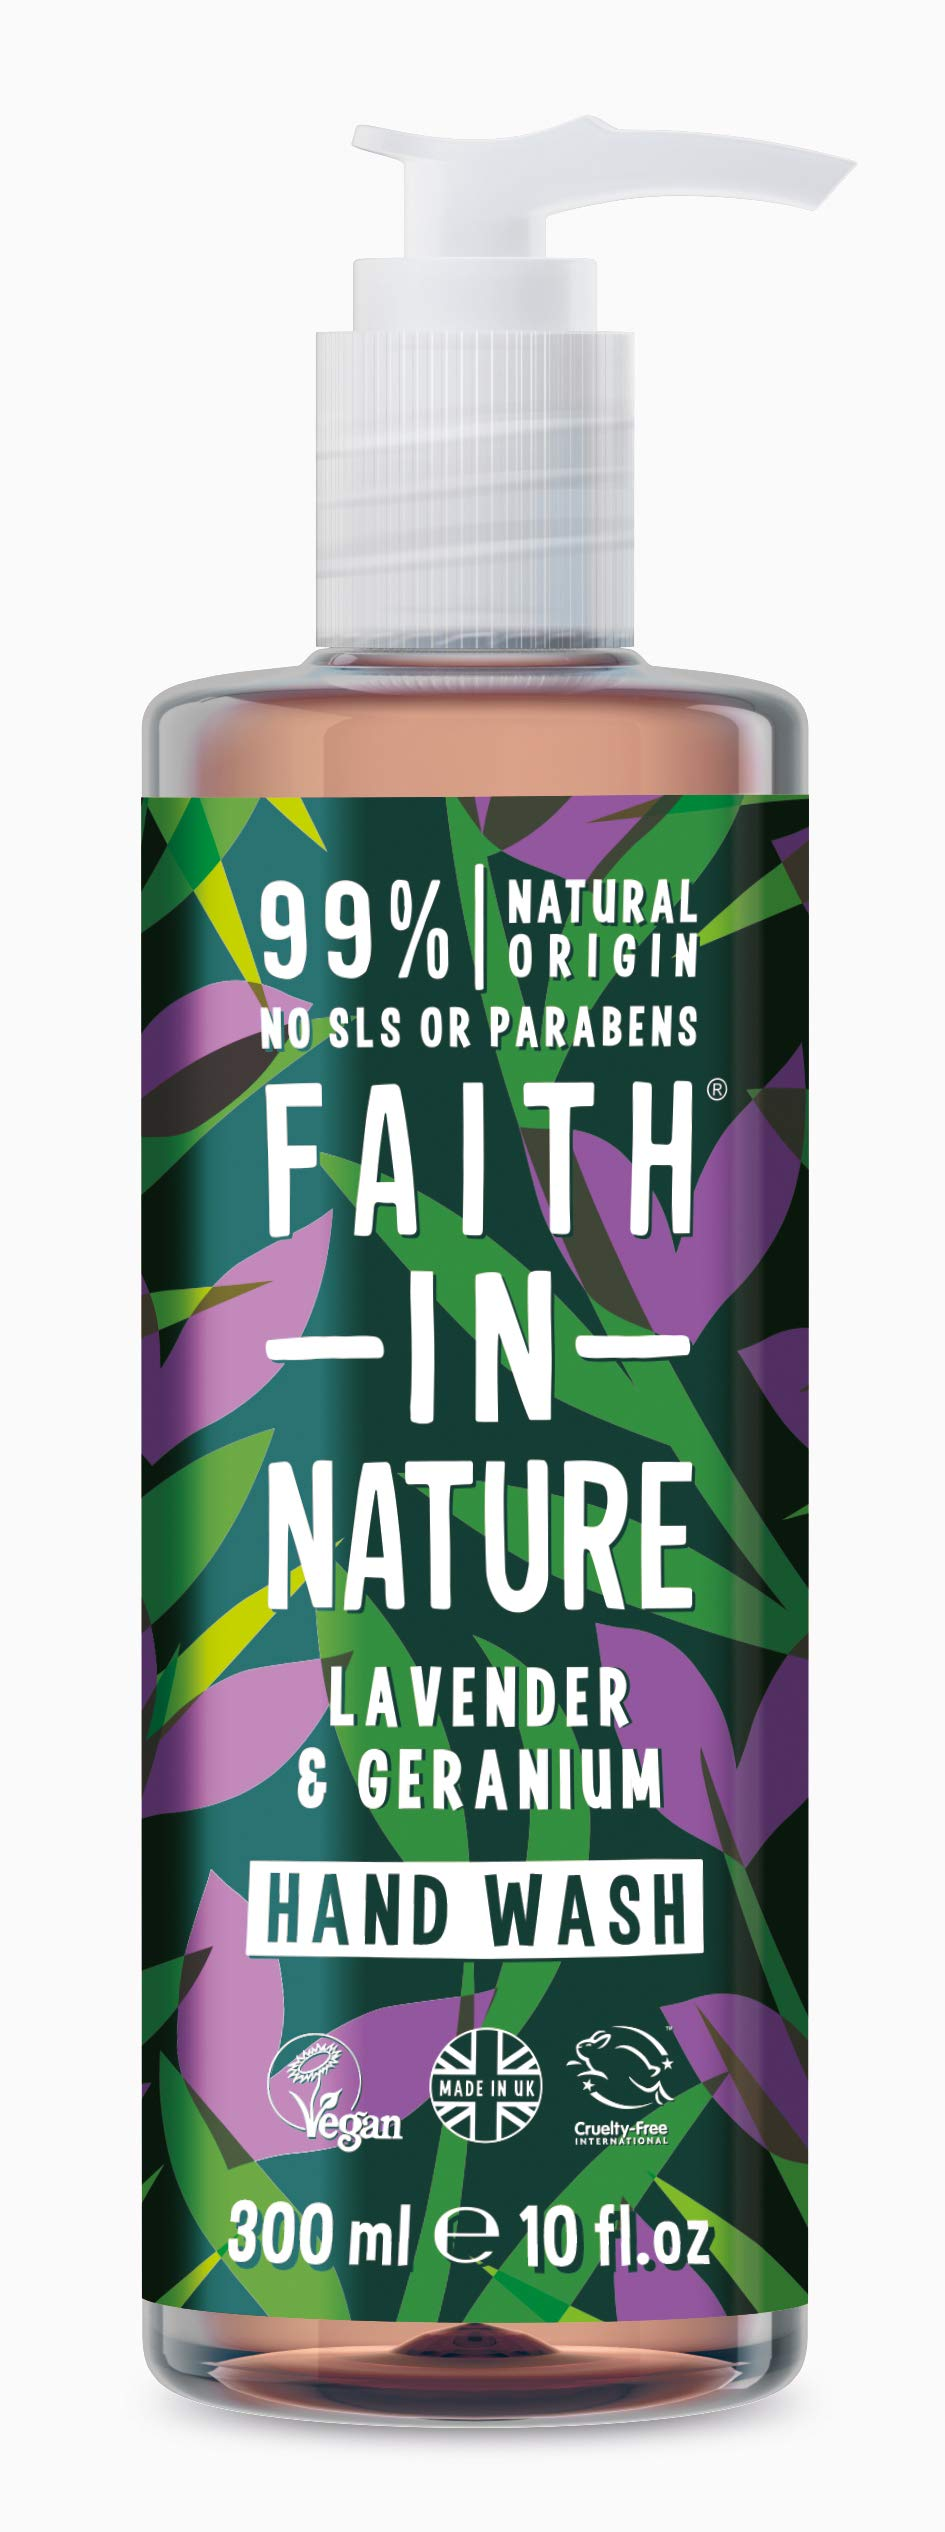 Faith In Nature Lavender & Geranium Soothing Natural Hand Wash 300ml 2